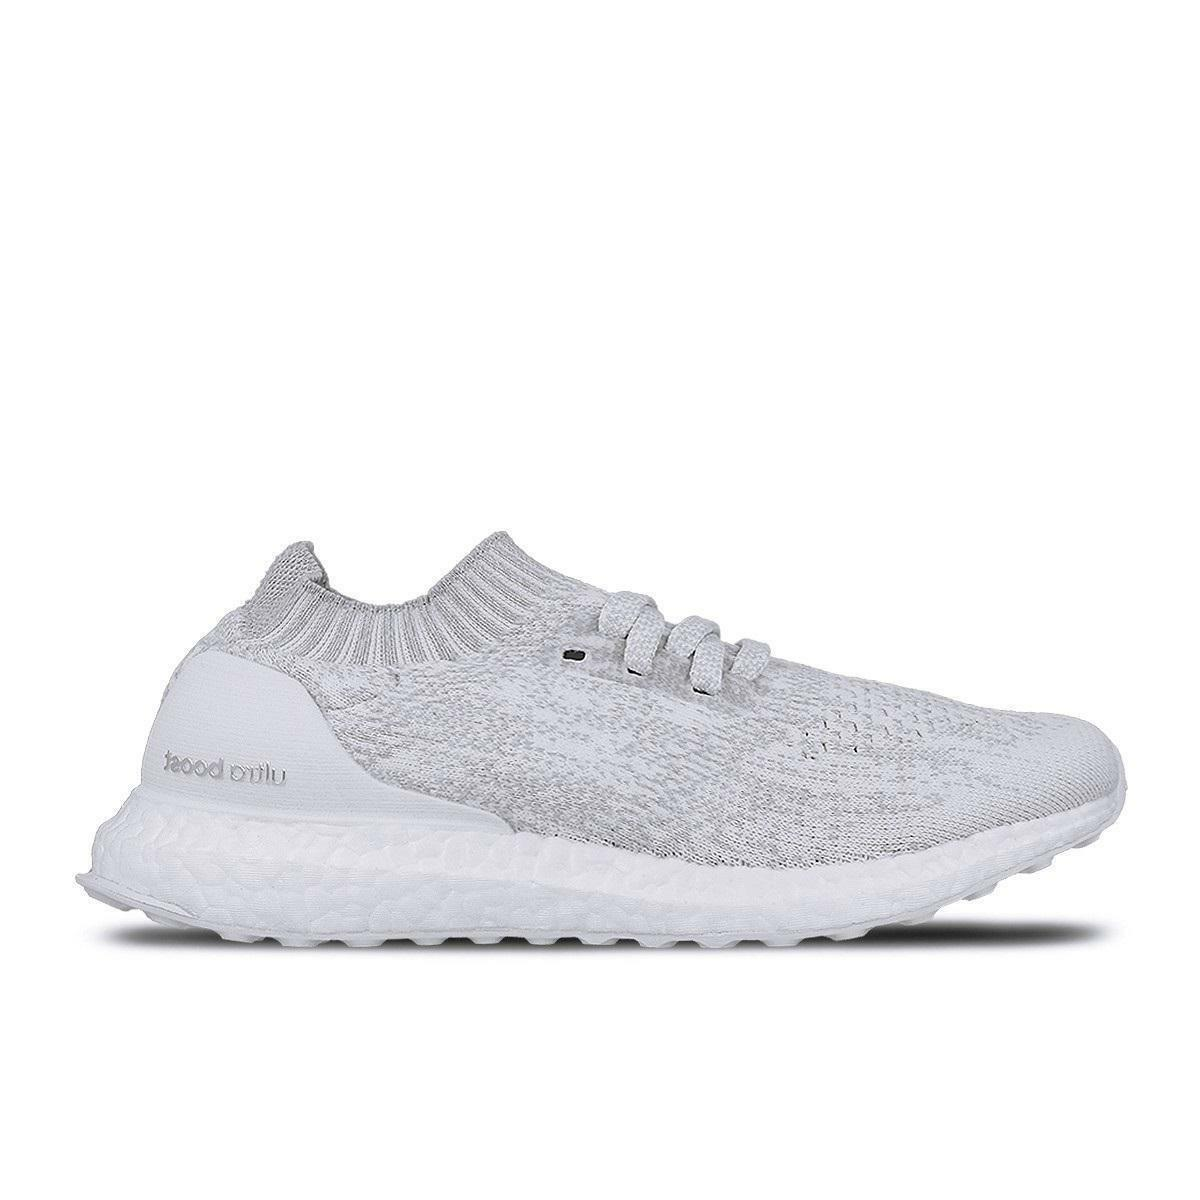 Women's ADIDAS ULTRABOOST UNCAGED W White Running Trainers S80780 SZ 9.5